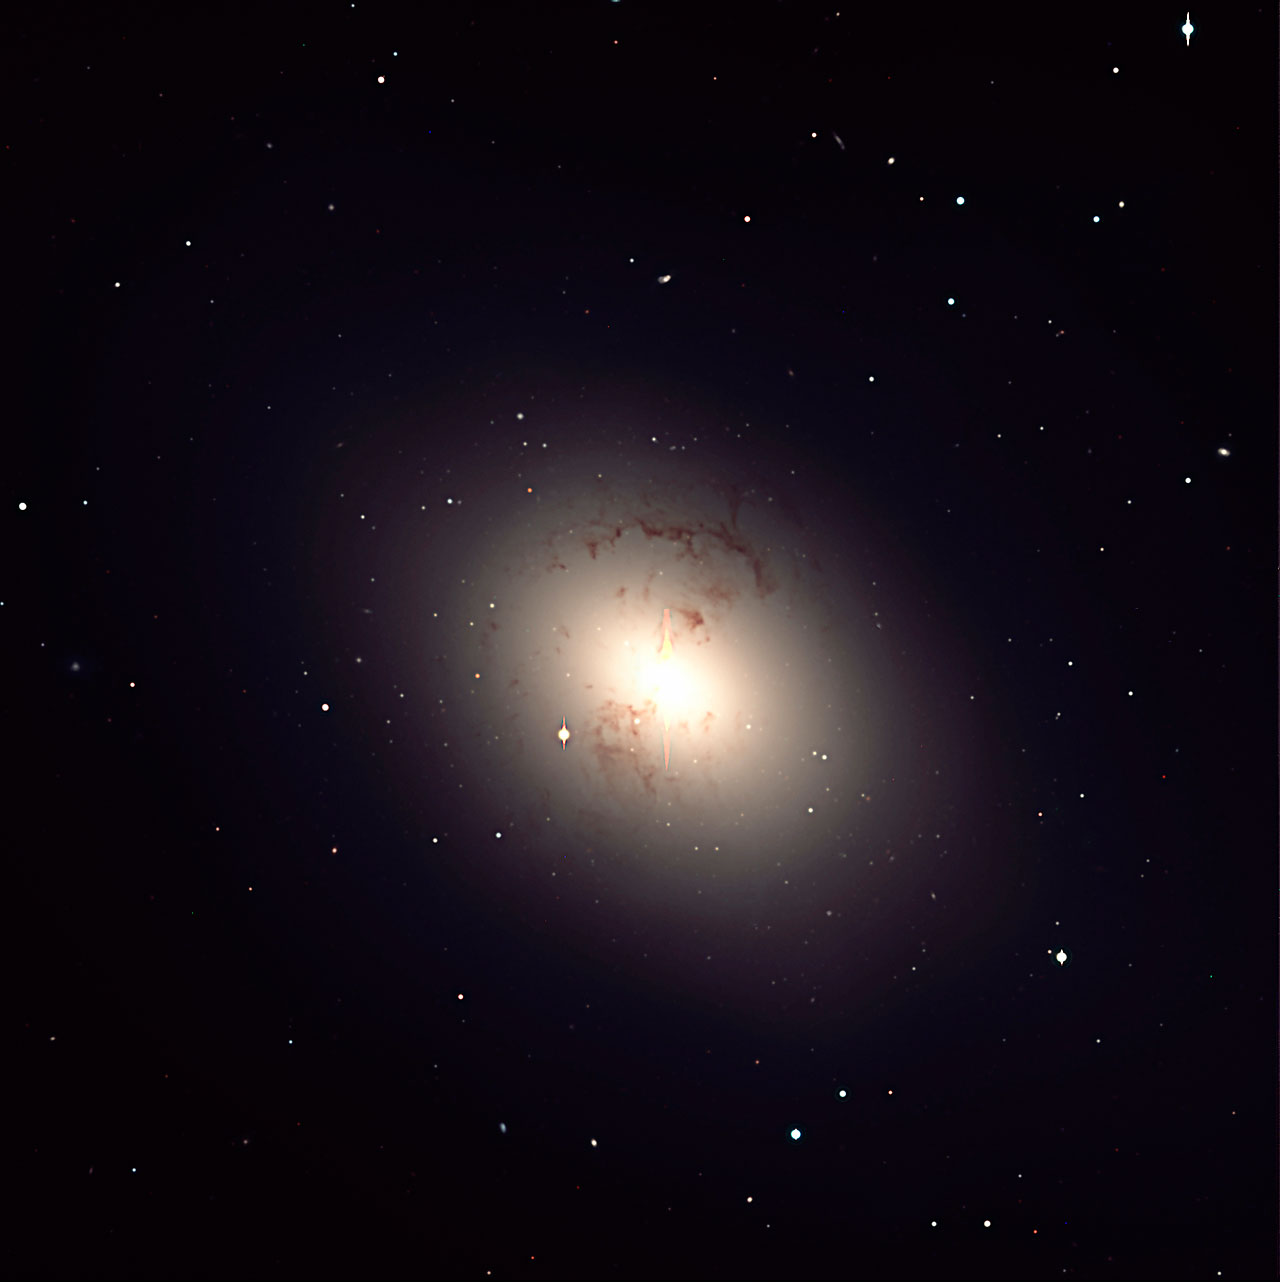 NGC 1316, a giant elliptical galaxy